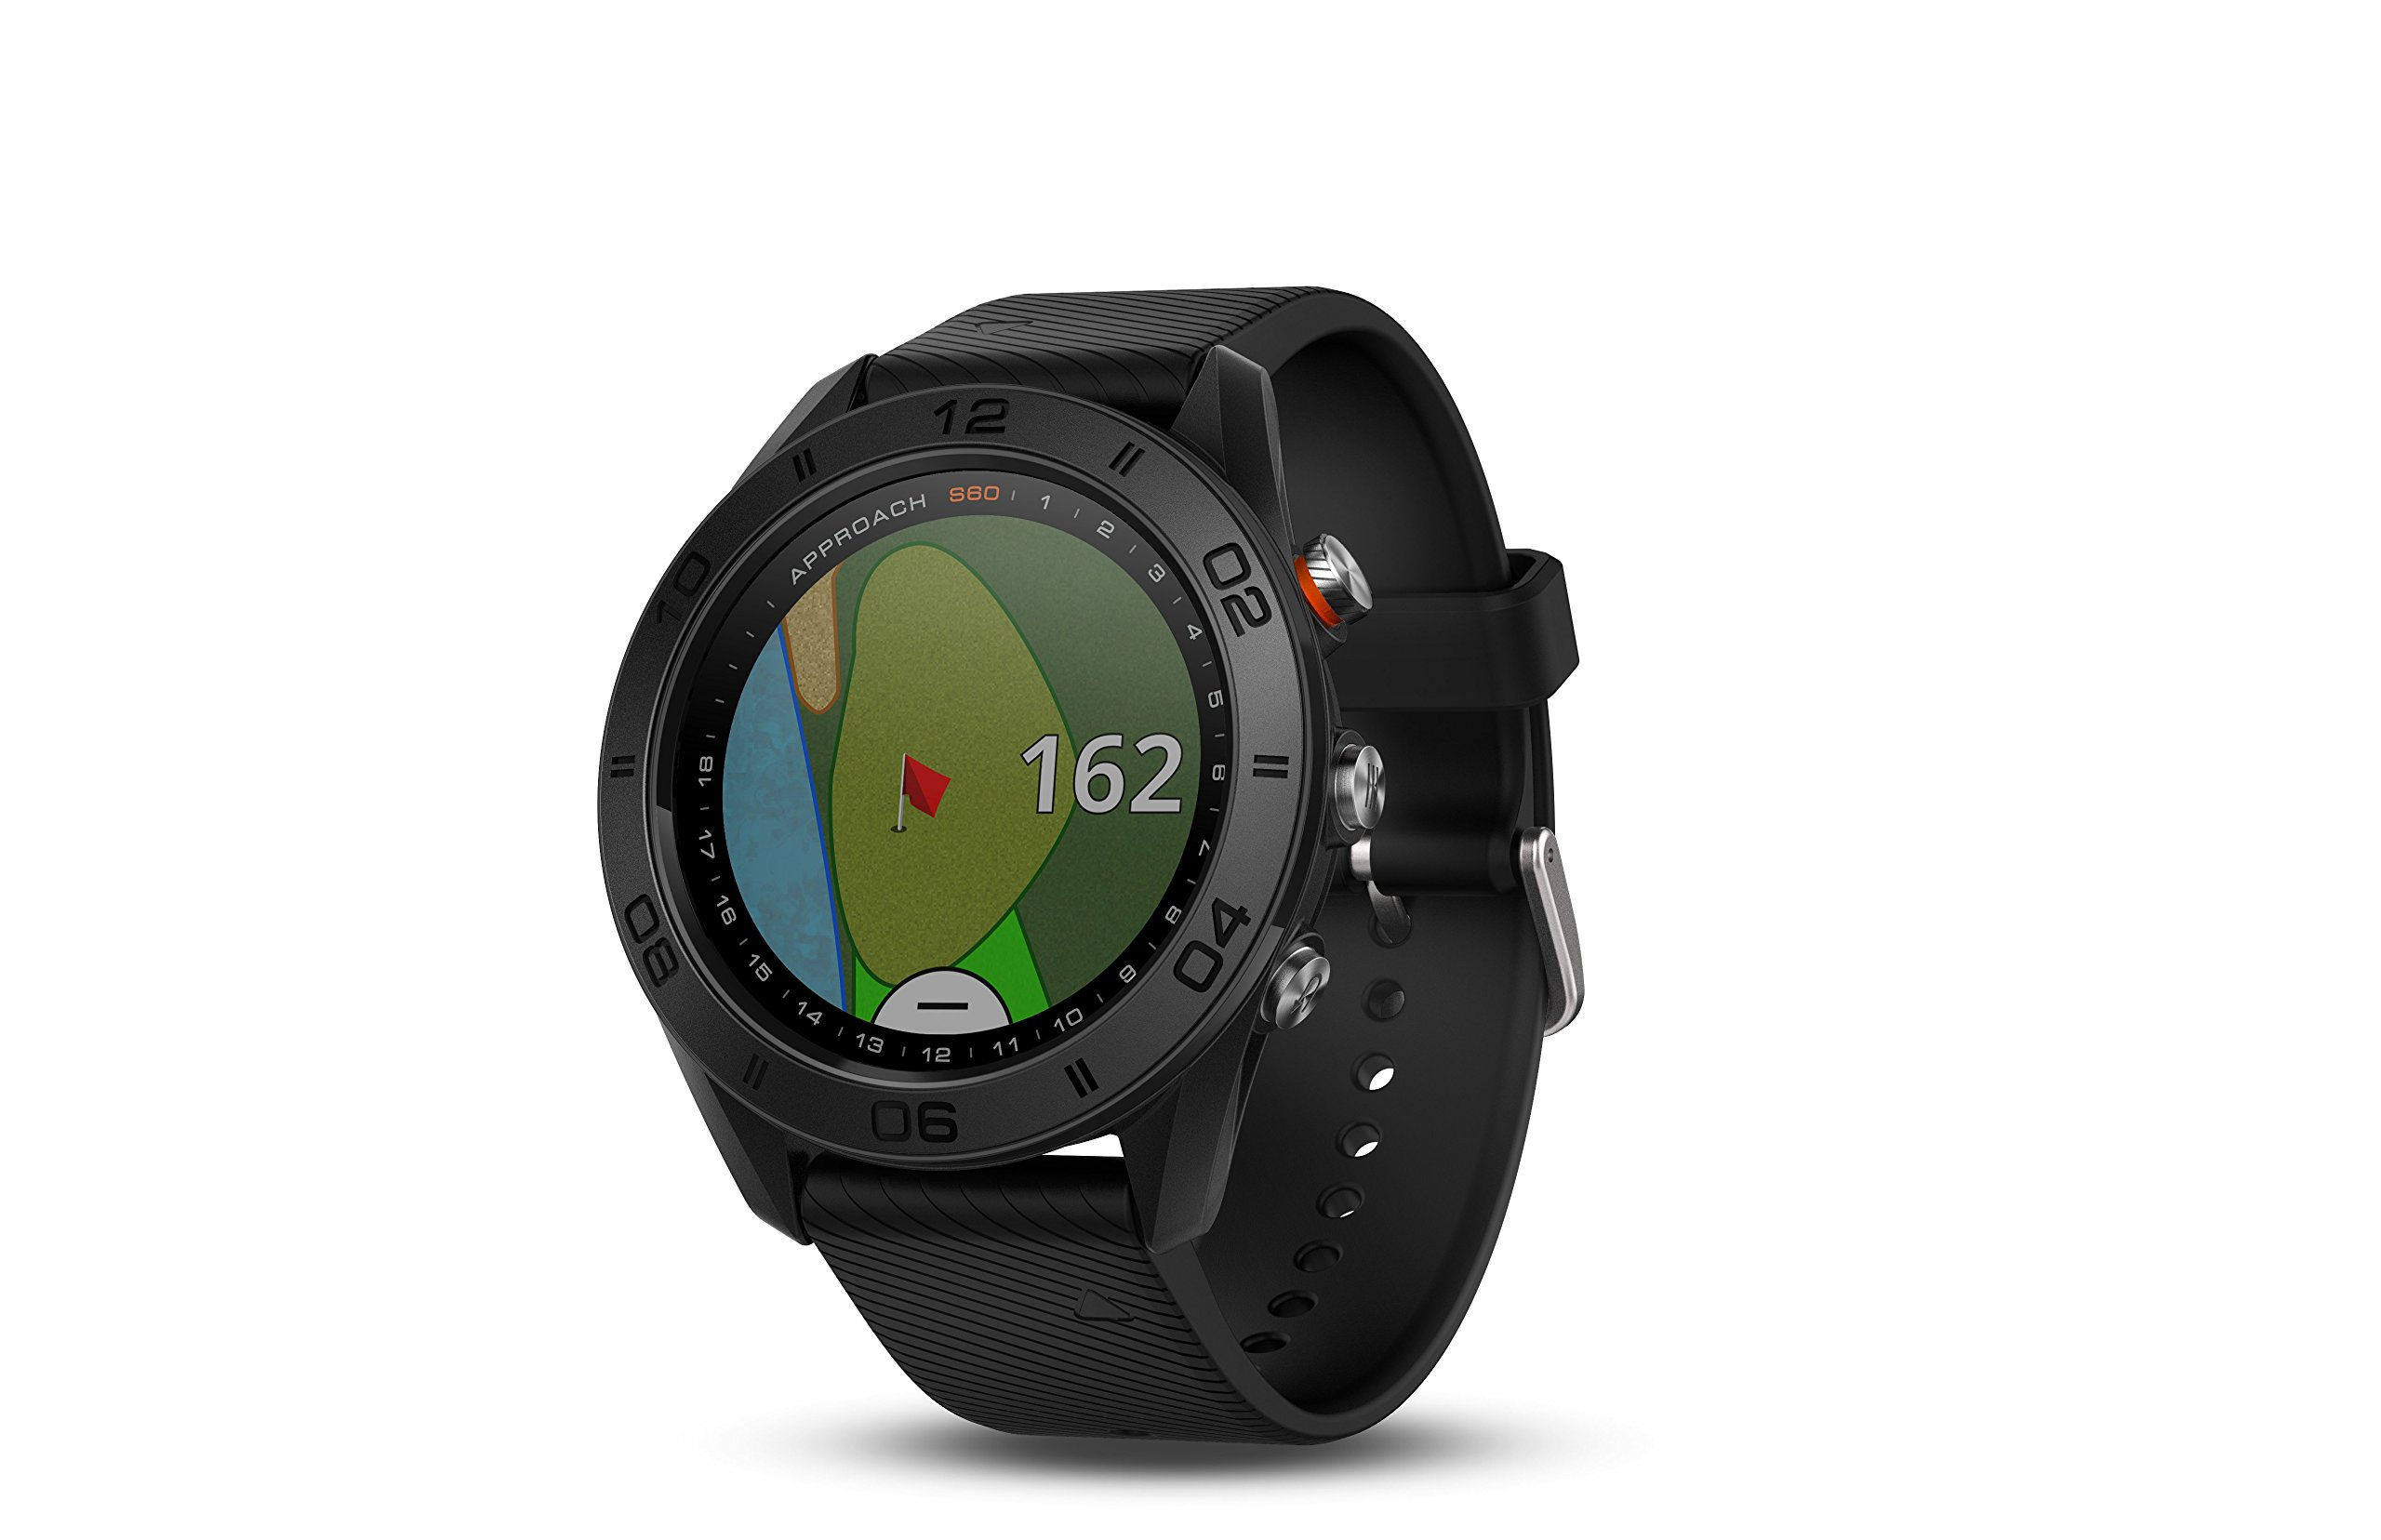 Garmin Approach S60, Premium GPS Golf Watch with Touchscreen Display and Full Color CourseView Mapping, Black w/Silicone Band by Garmin